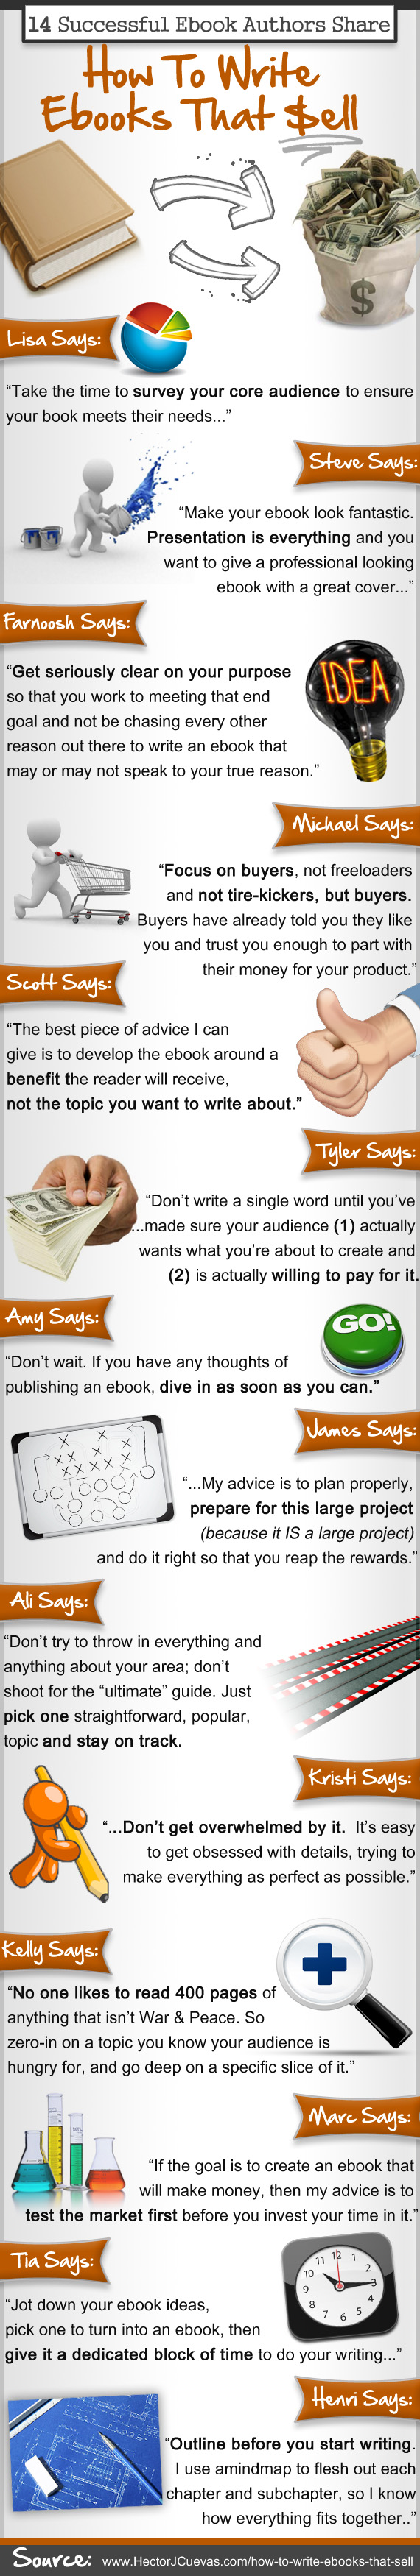 14 Ebook Authors Reveal How To Write Ebooks That Sell - Infographic